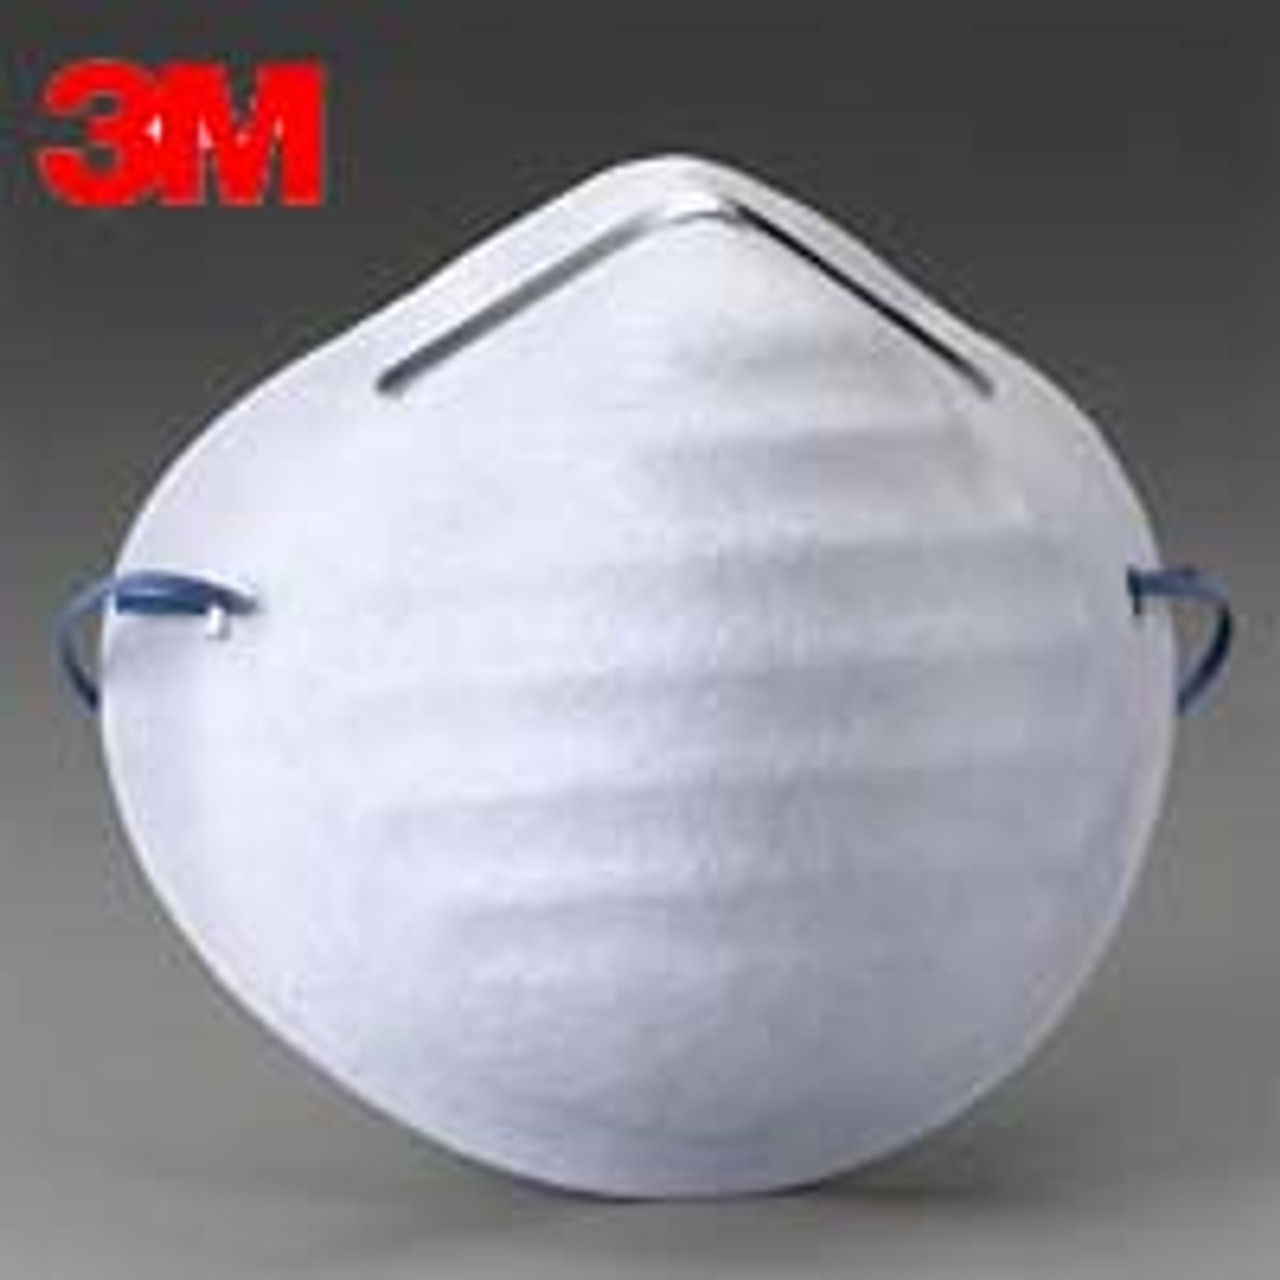 3m saw dust mask